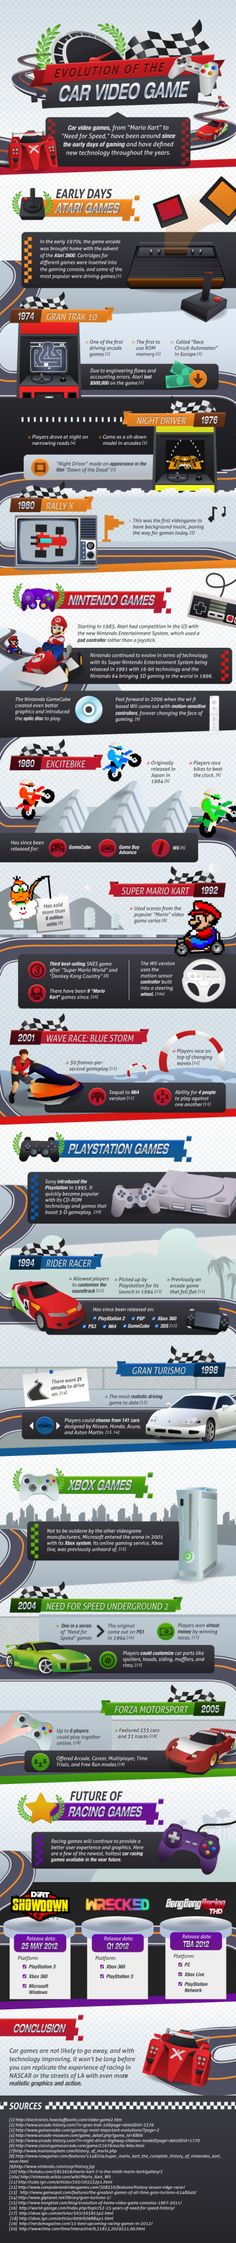 Evolution of the car video game #infographic